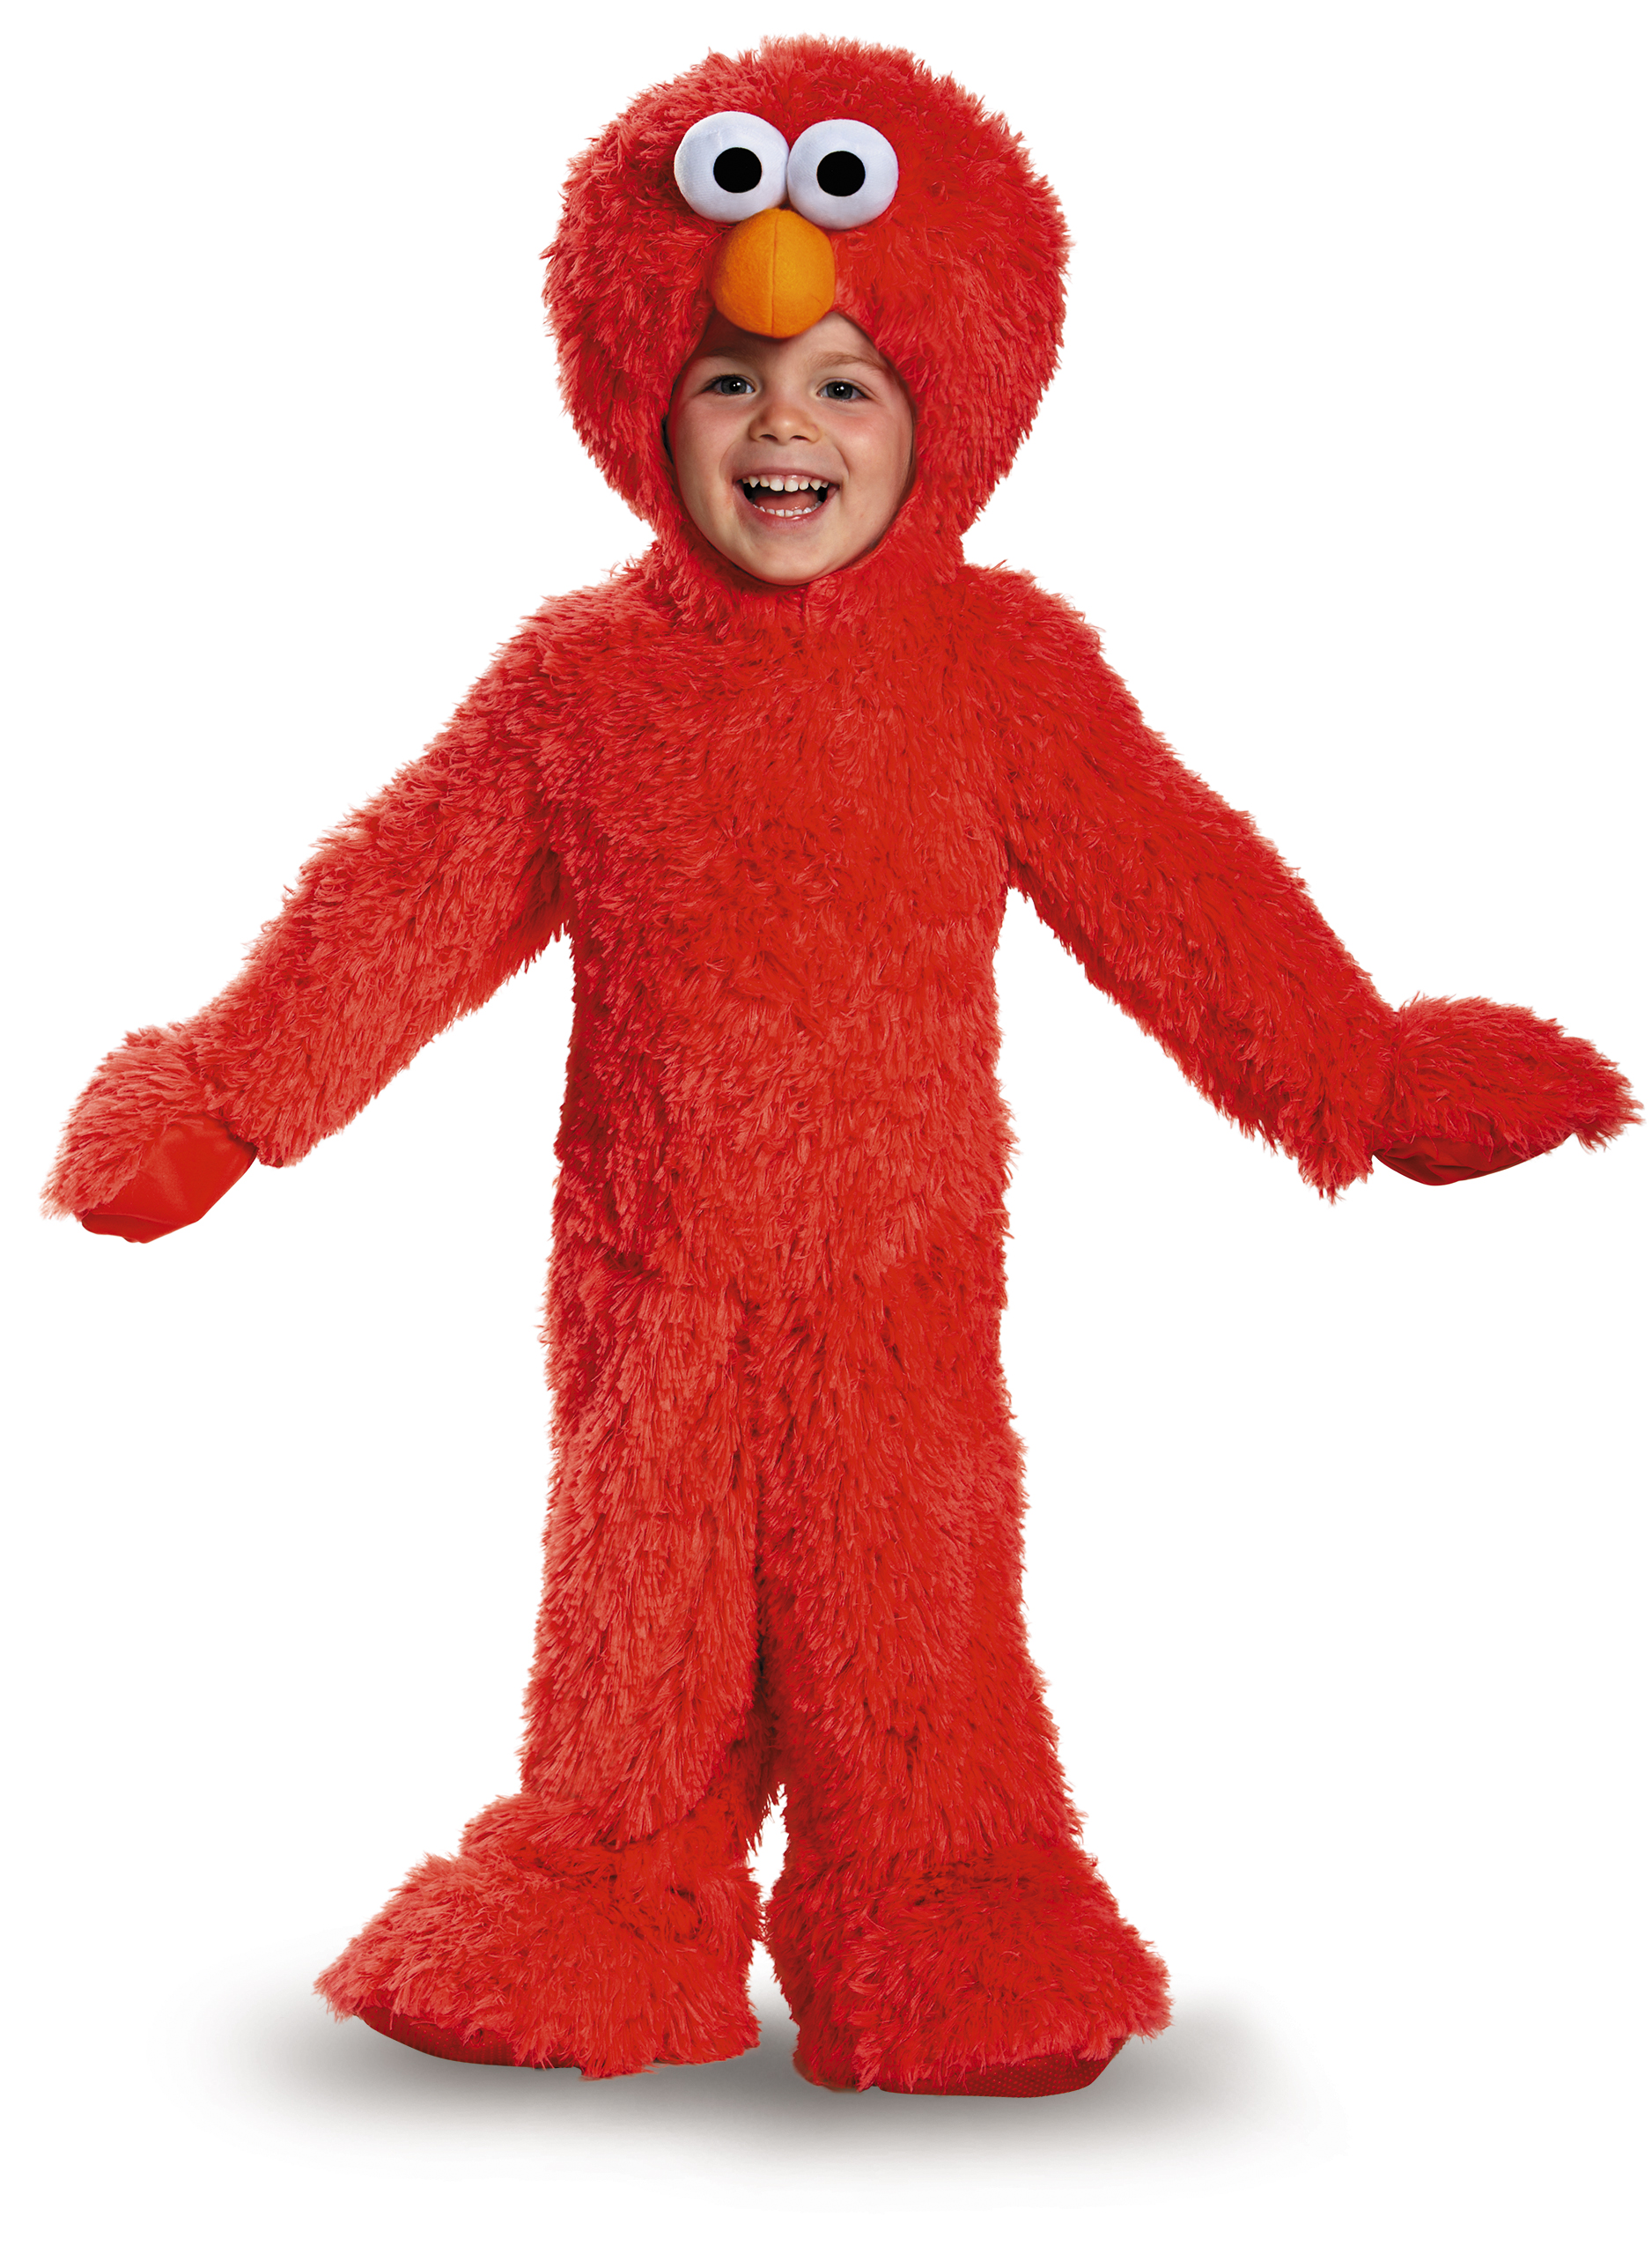 Toddler Elmo Extra Deluxe Plush Costume by Disguise 76876 by Disguise